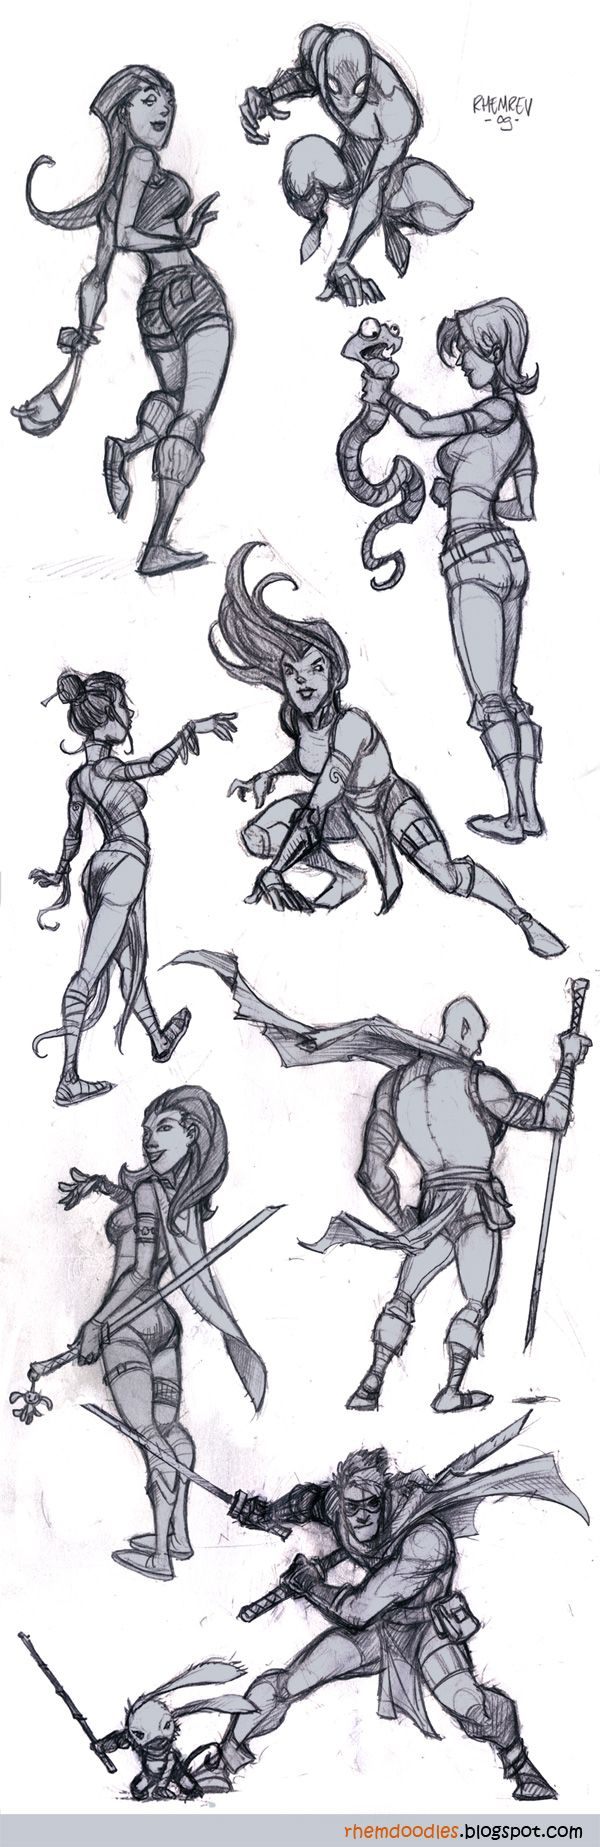 RHEMREV.COM | Visual development: February 2009 ✤ || CHARACTER DESIGN REFERENCES | キャラクターデザイン • Find more at https://www.facebook.com/CharacterDesignReferences if you're looking for: #lineart #art #character #design #illustration #expressions #best #animation #drawing #archive #library #reference #anatomy #traditional #sketch #artist #pose #settei #gestures #how #to #tutorial #comics #conceptart #modelsheet #cartoon #lifedrawing || ✤